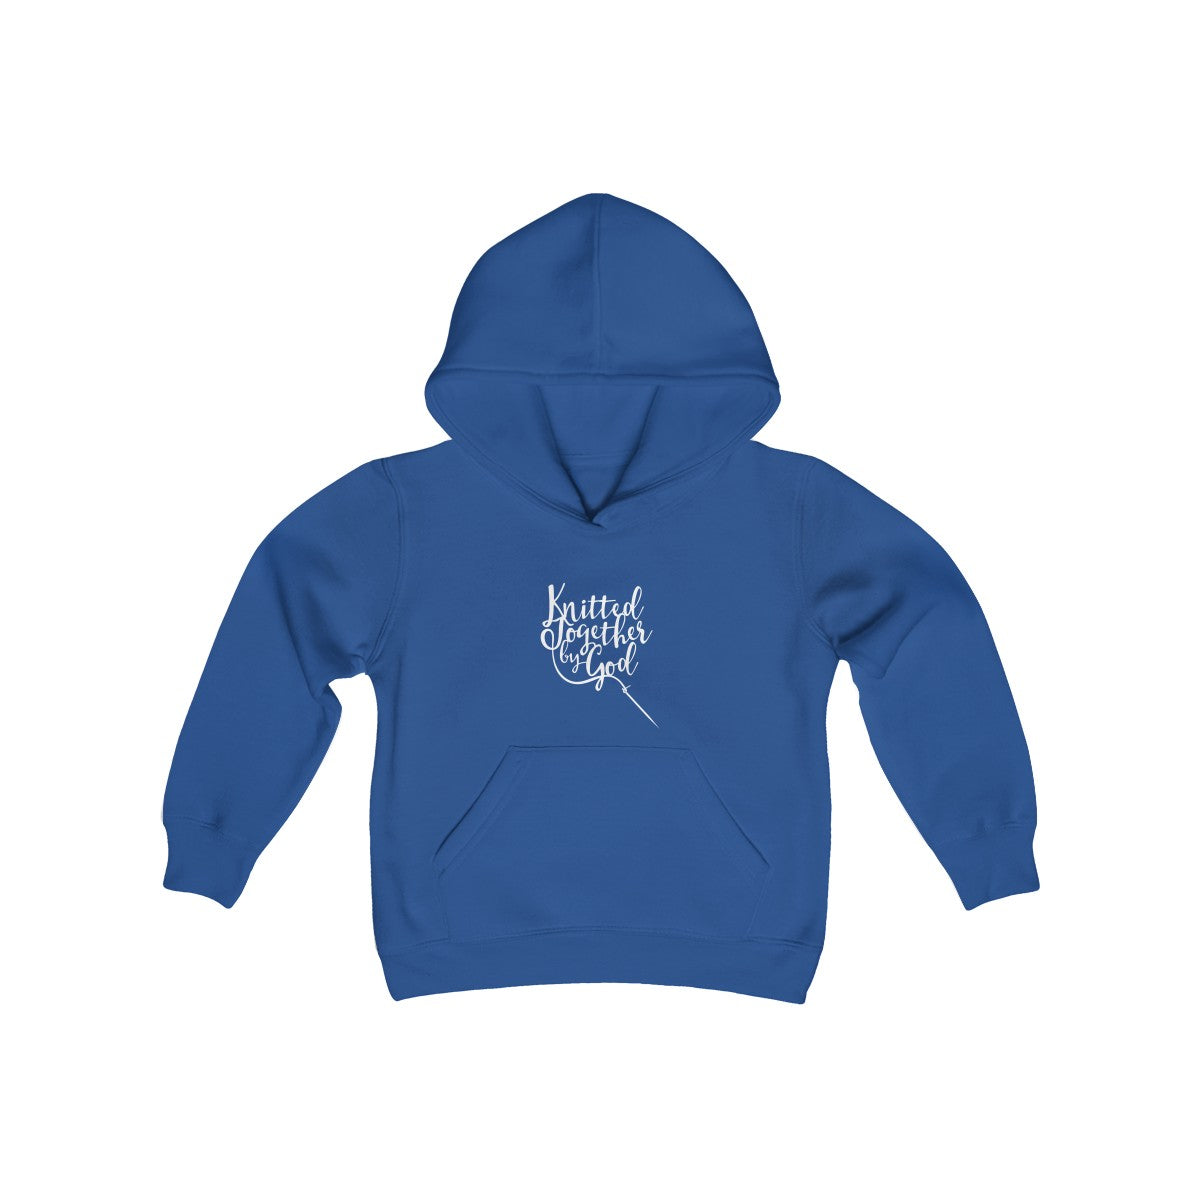 Knitted Together By God Kids Hooded Sweatshirt